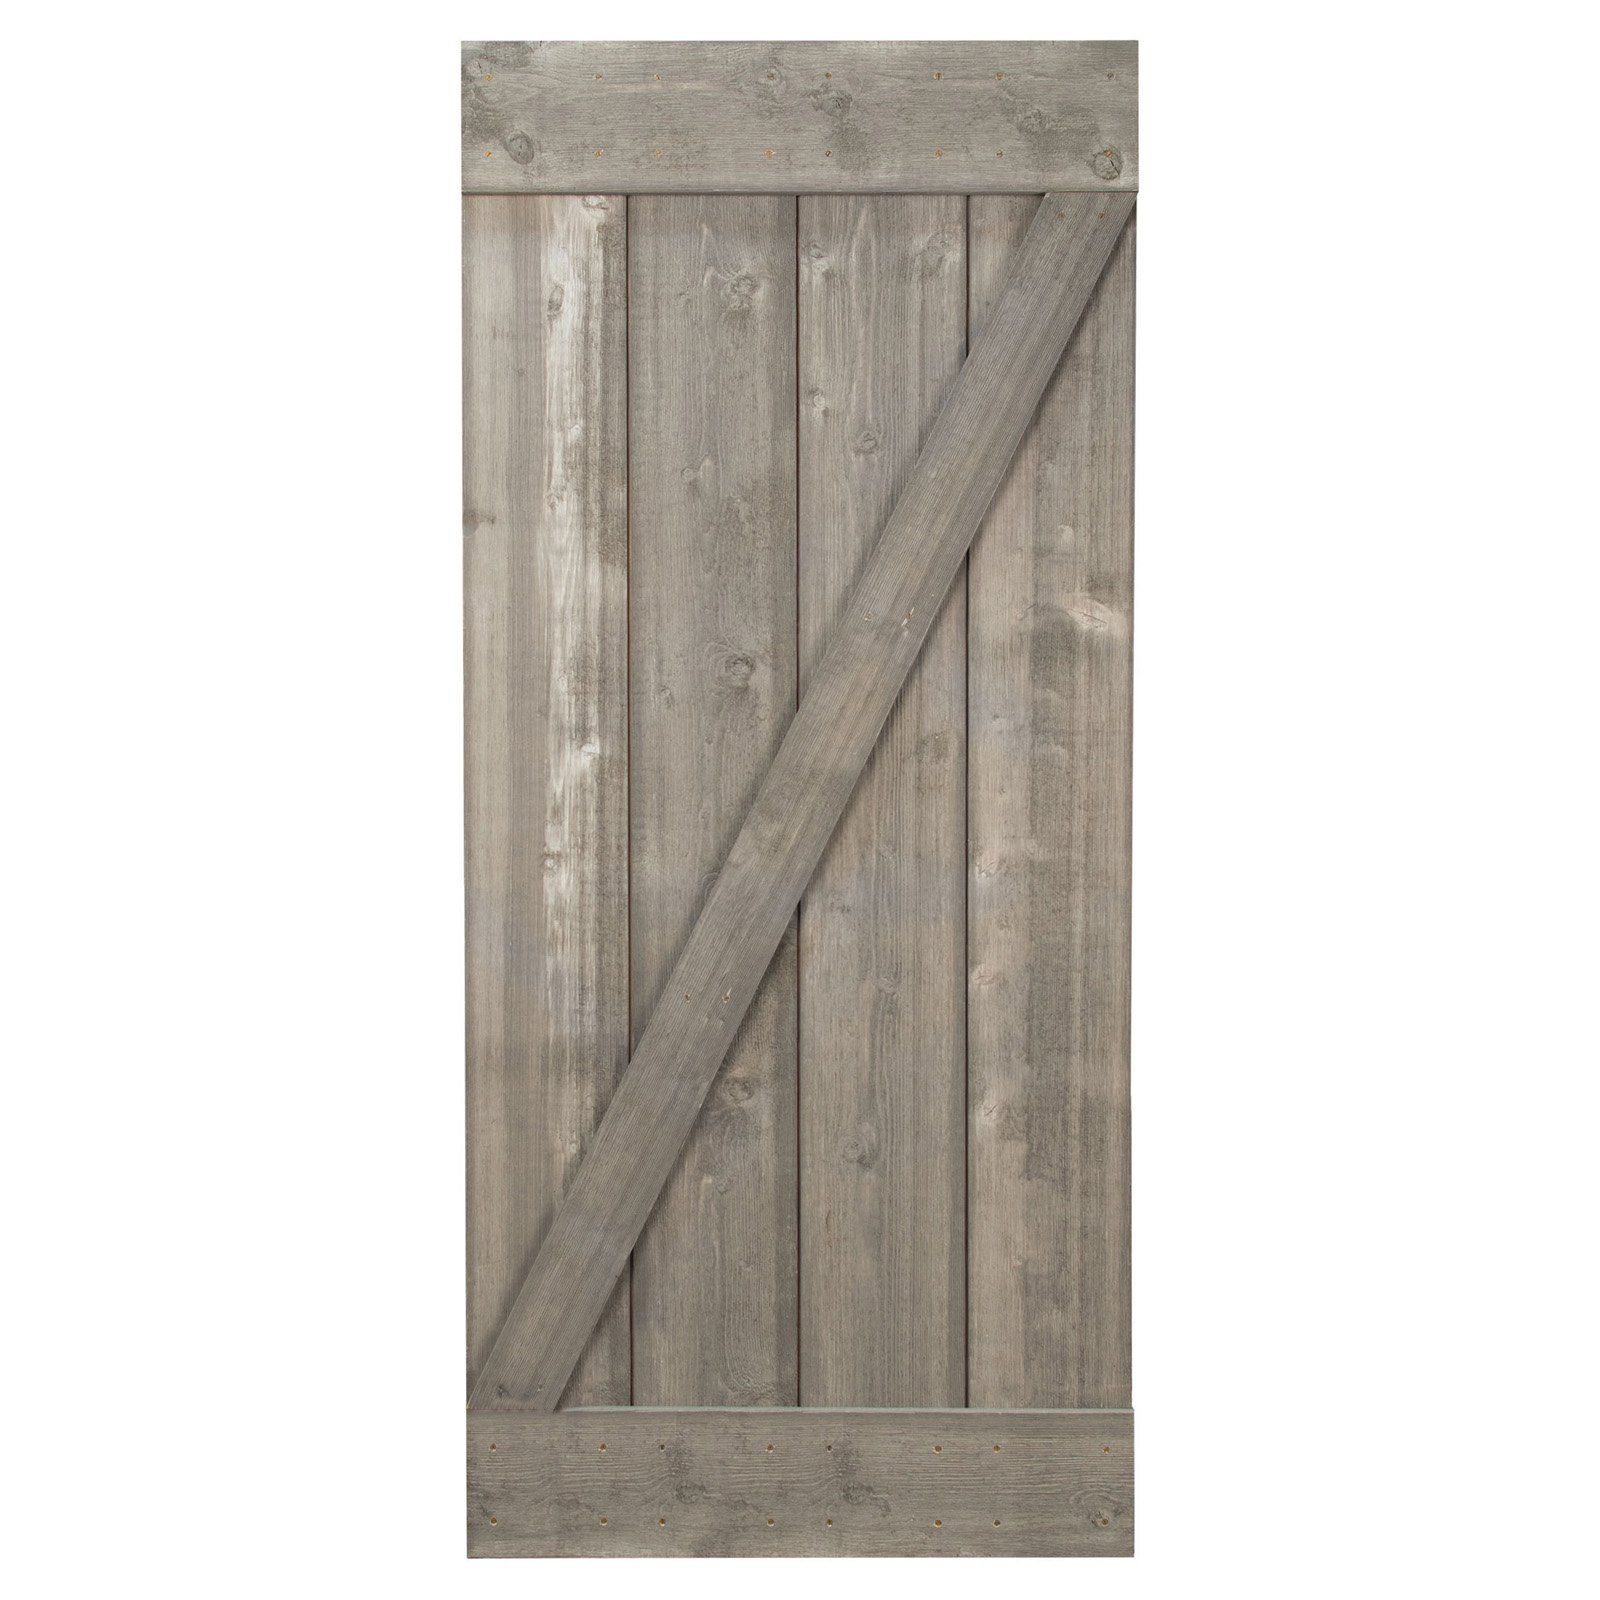 Real Carriage Weathered Z Brace Barn Door Barn Doors Sliding Barn Door Barn Door Designs